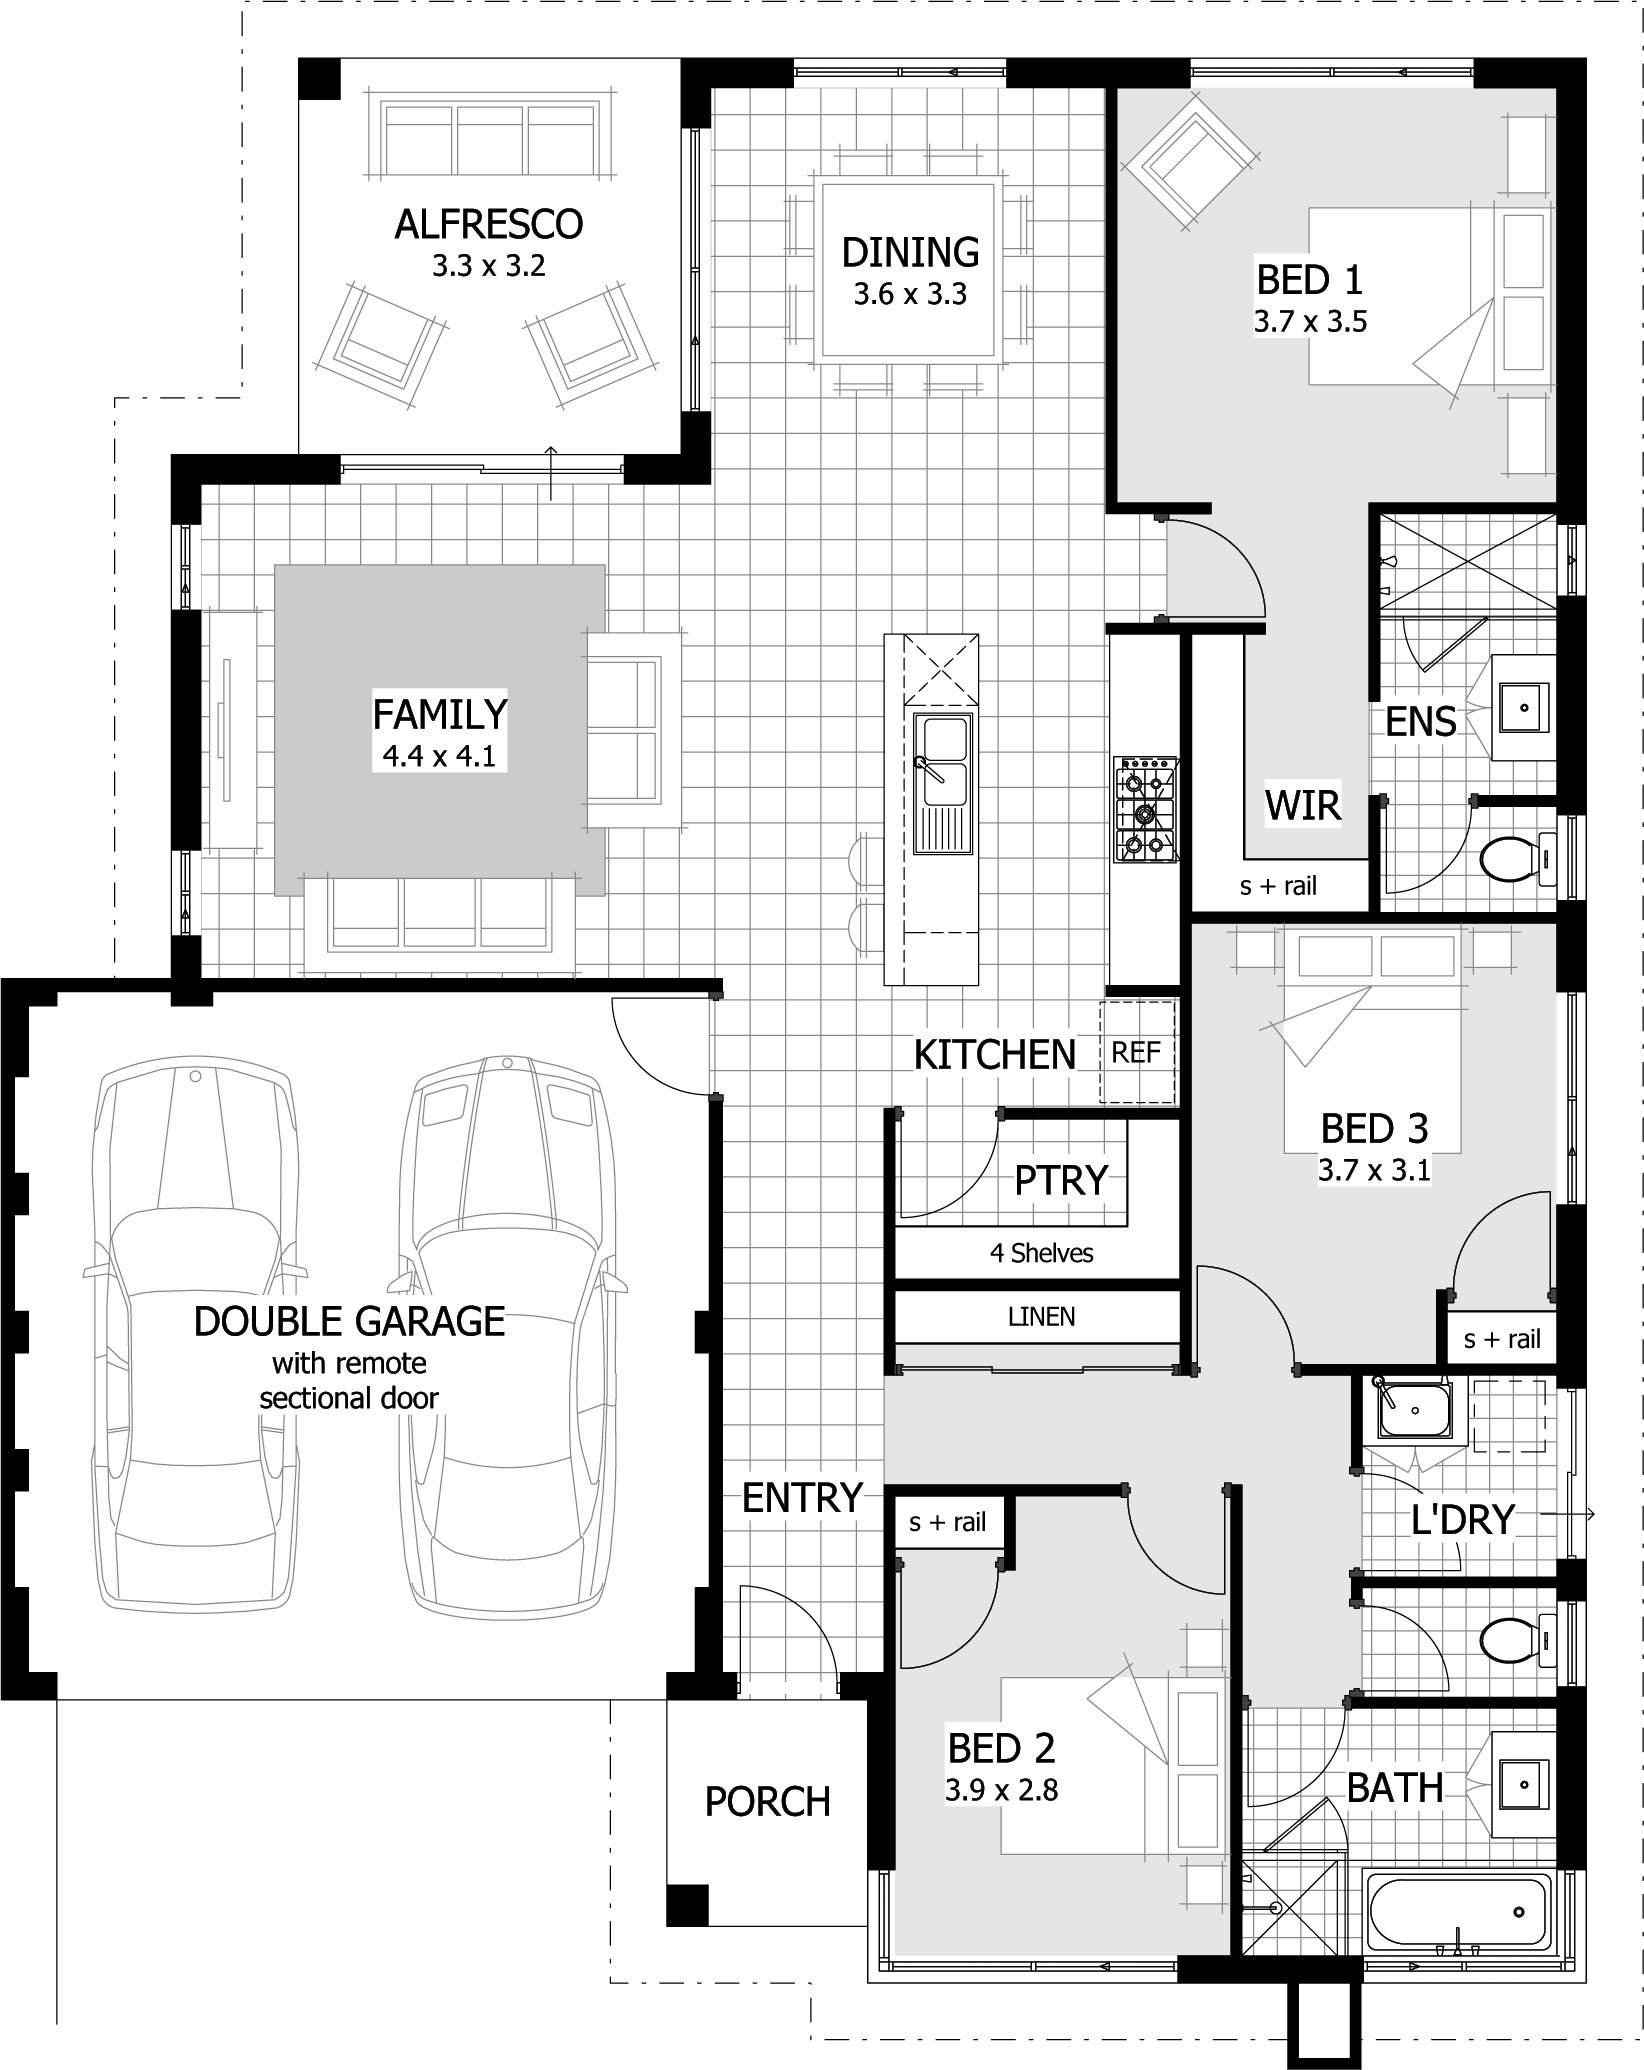 House Plans 3 Bedroom and Double Garage Fresh Bedroom House Plans Zimbabwe Home Ideas south Africa Ghana